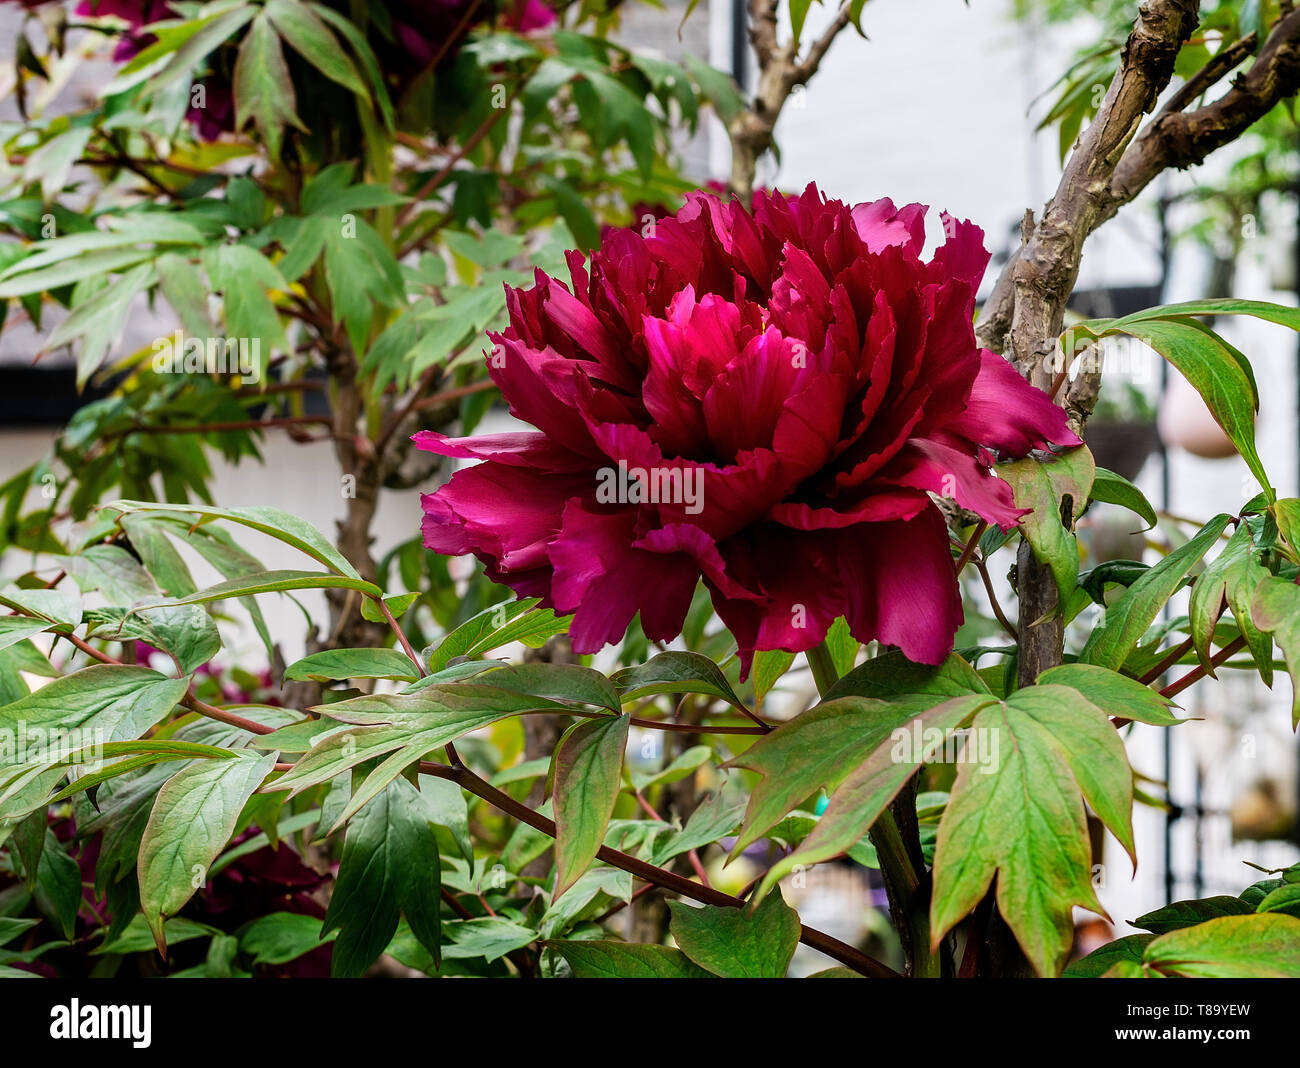 A Tree Peony in full flower - Stock Image